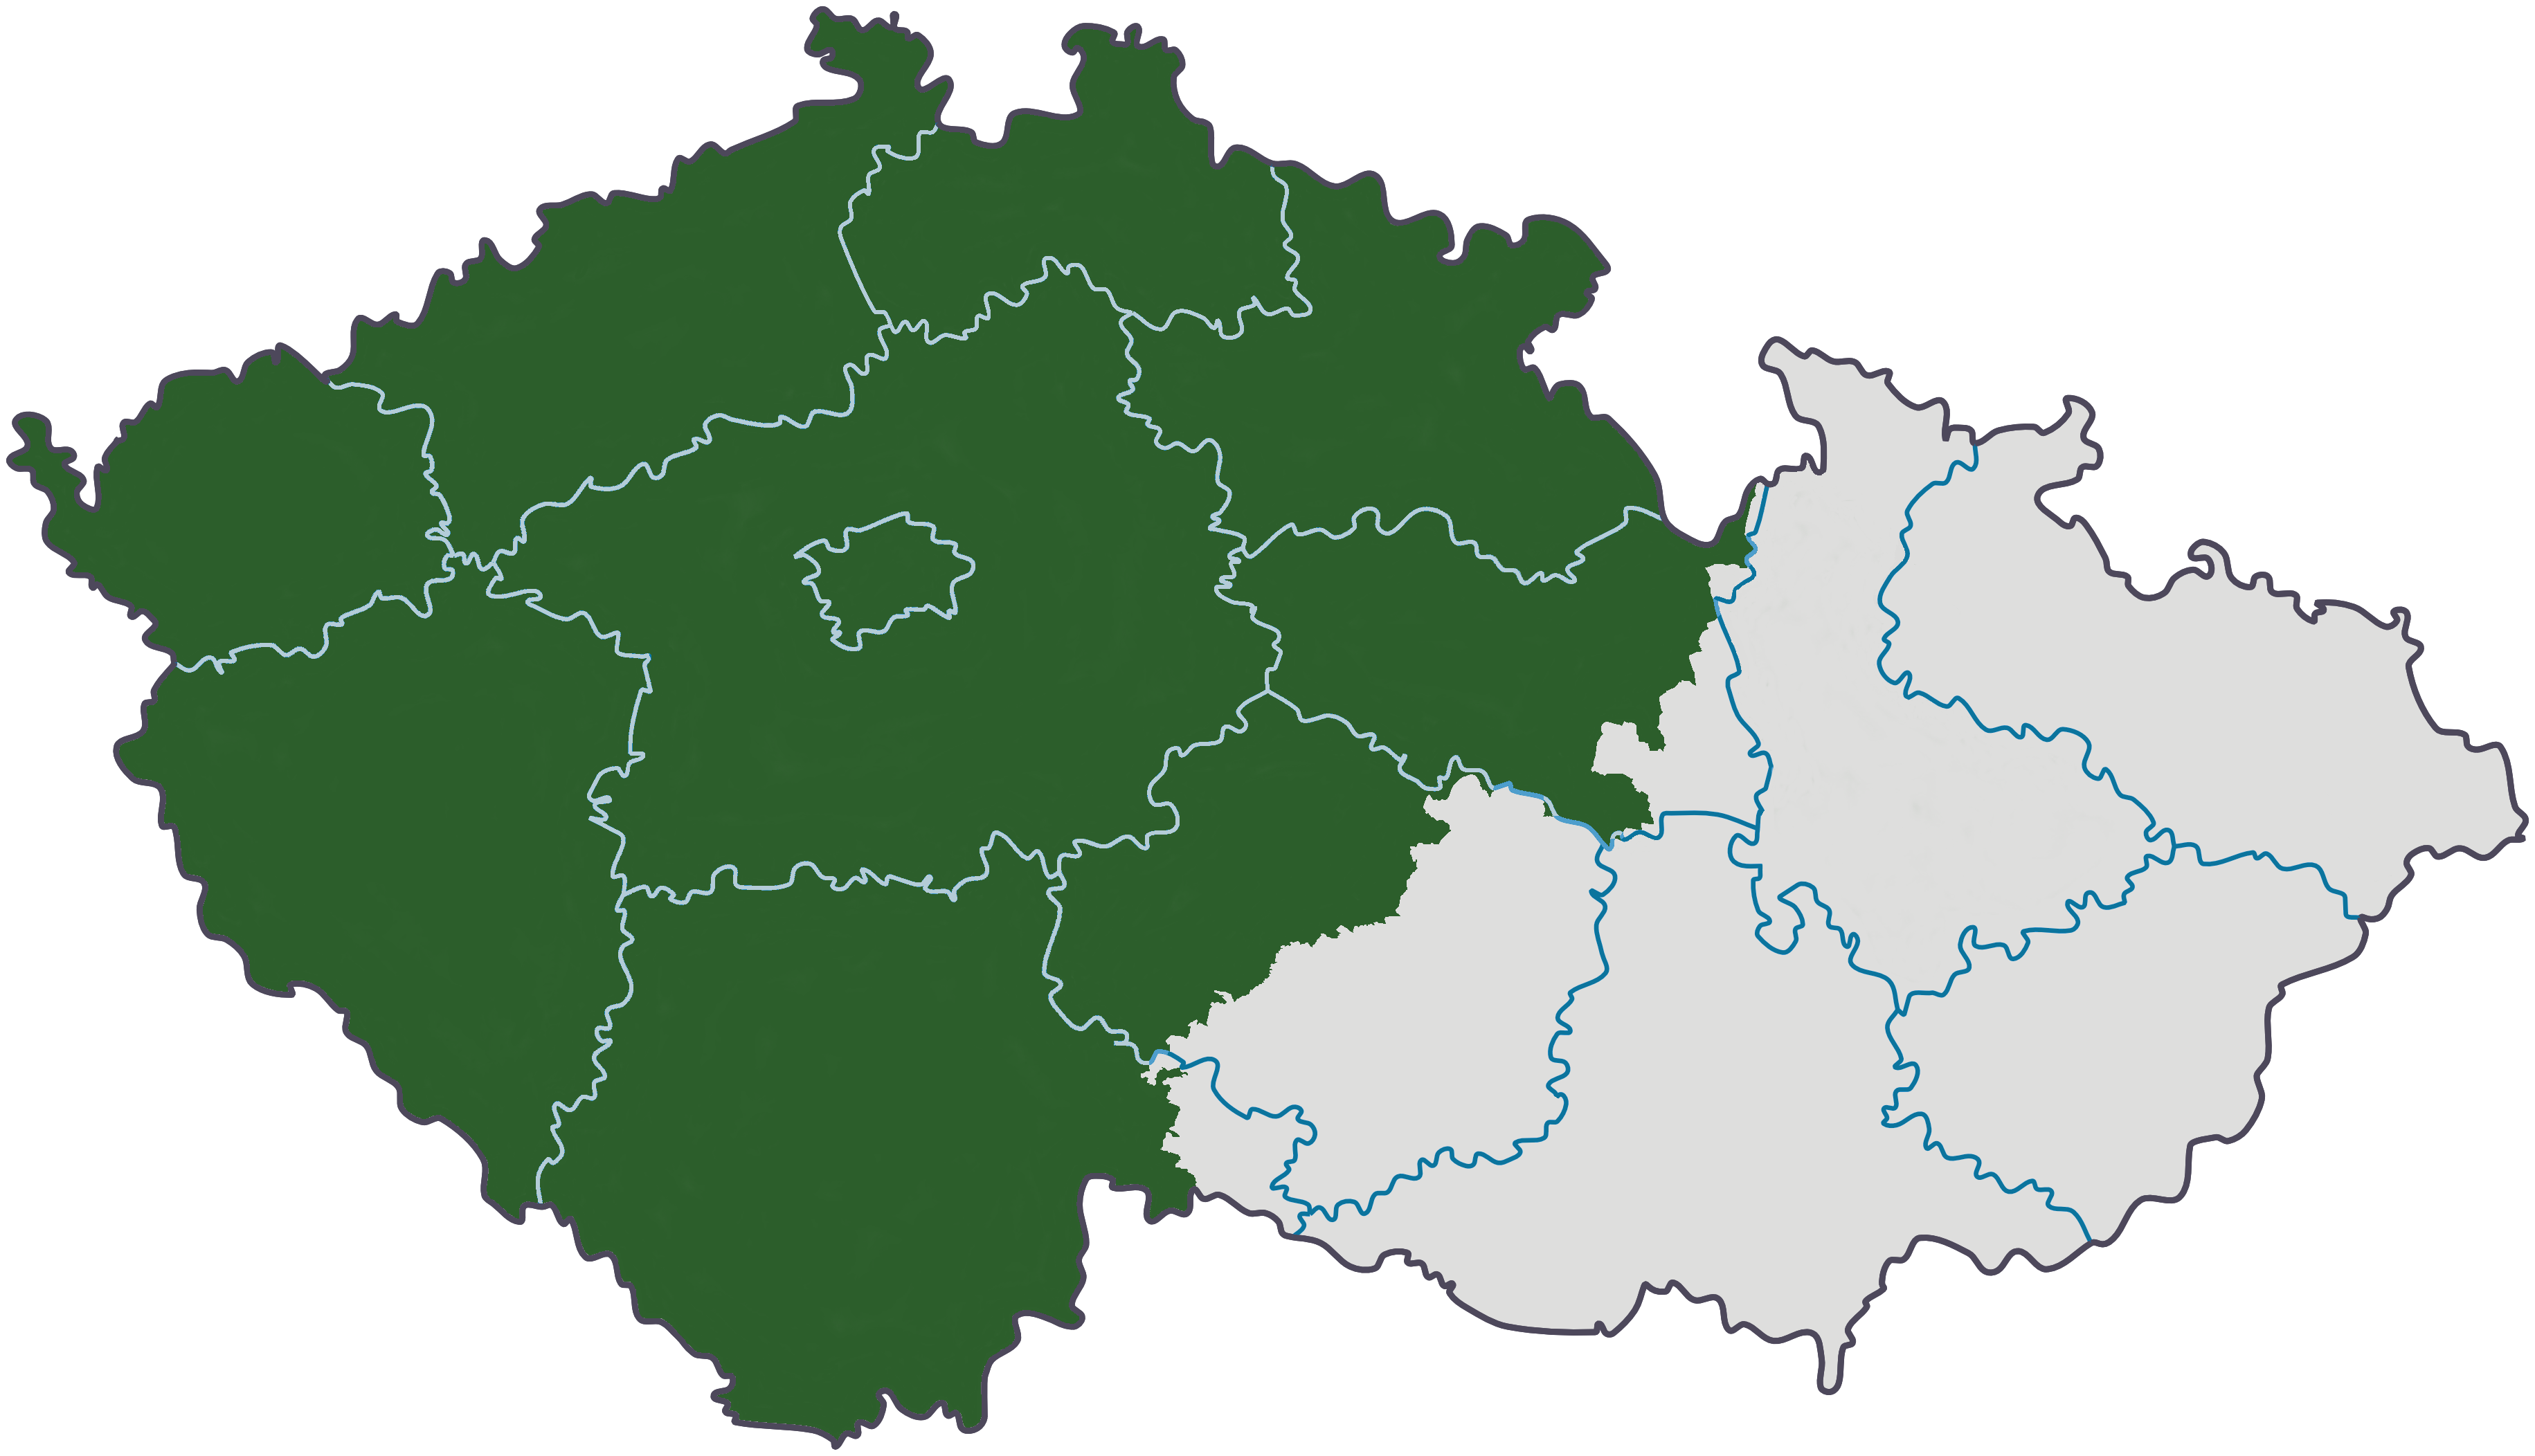 Bohemia green in relation to the current